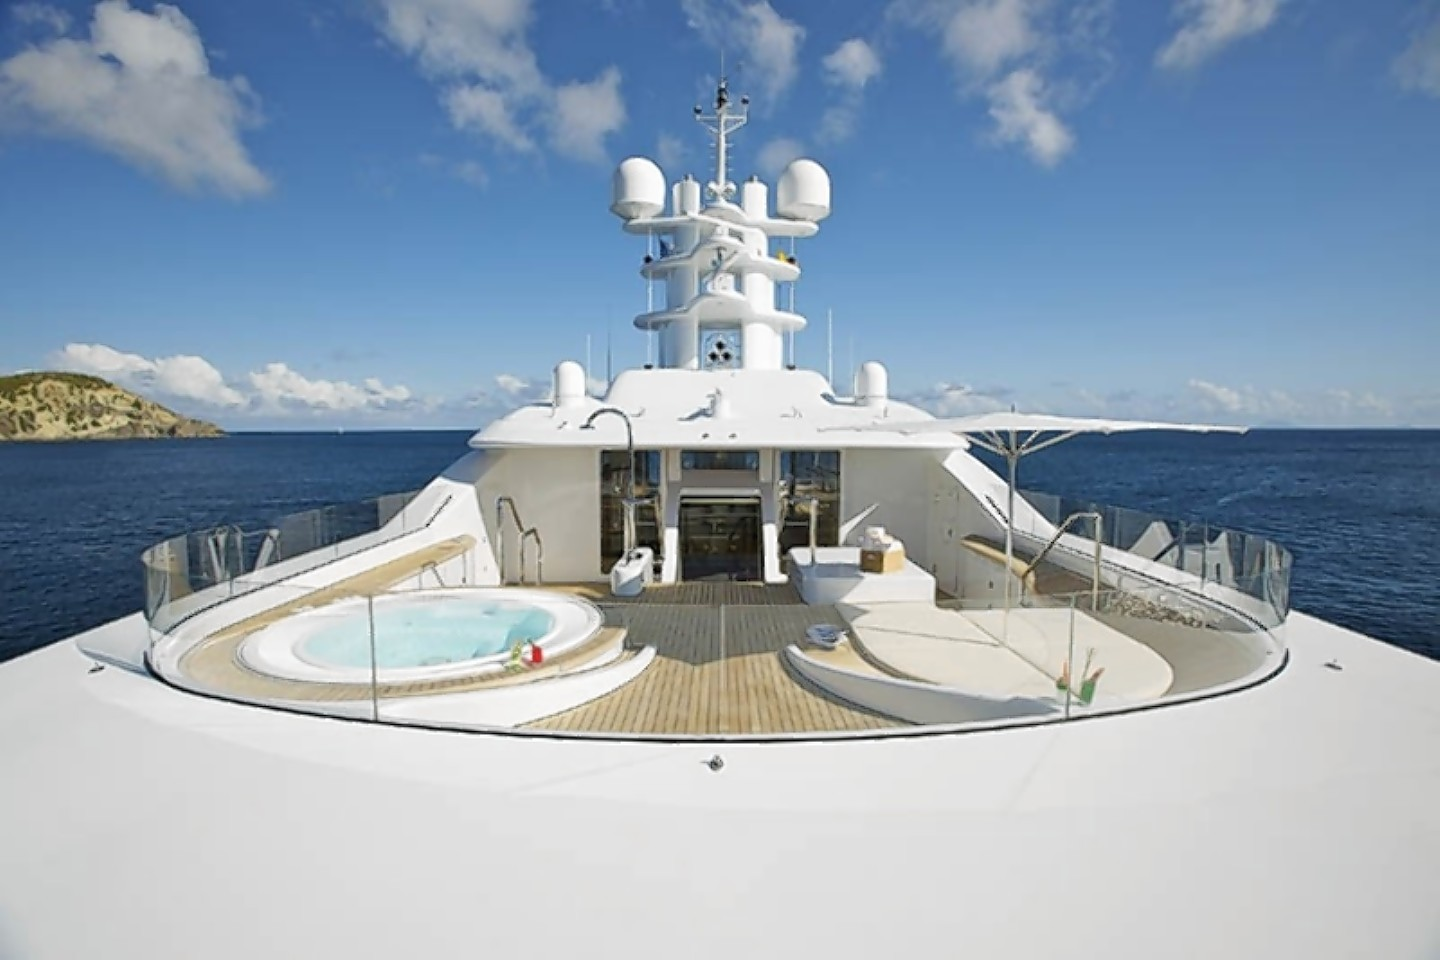 Inside Willy Michel's super yacht